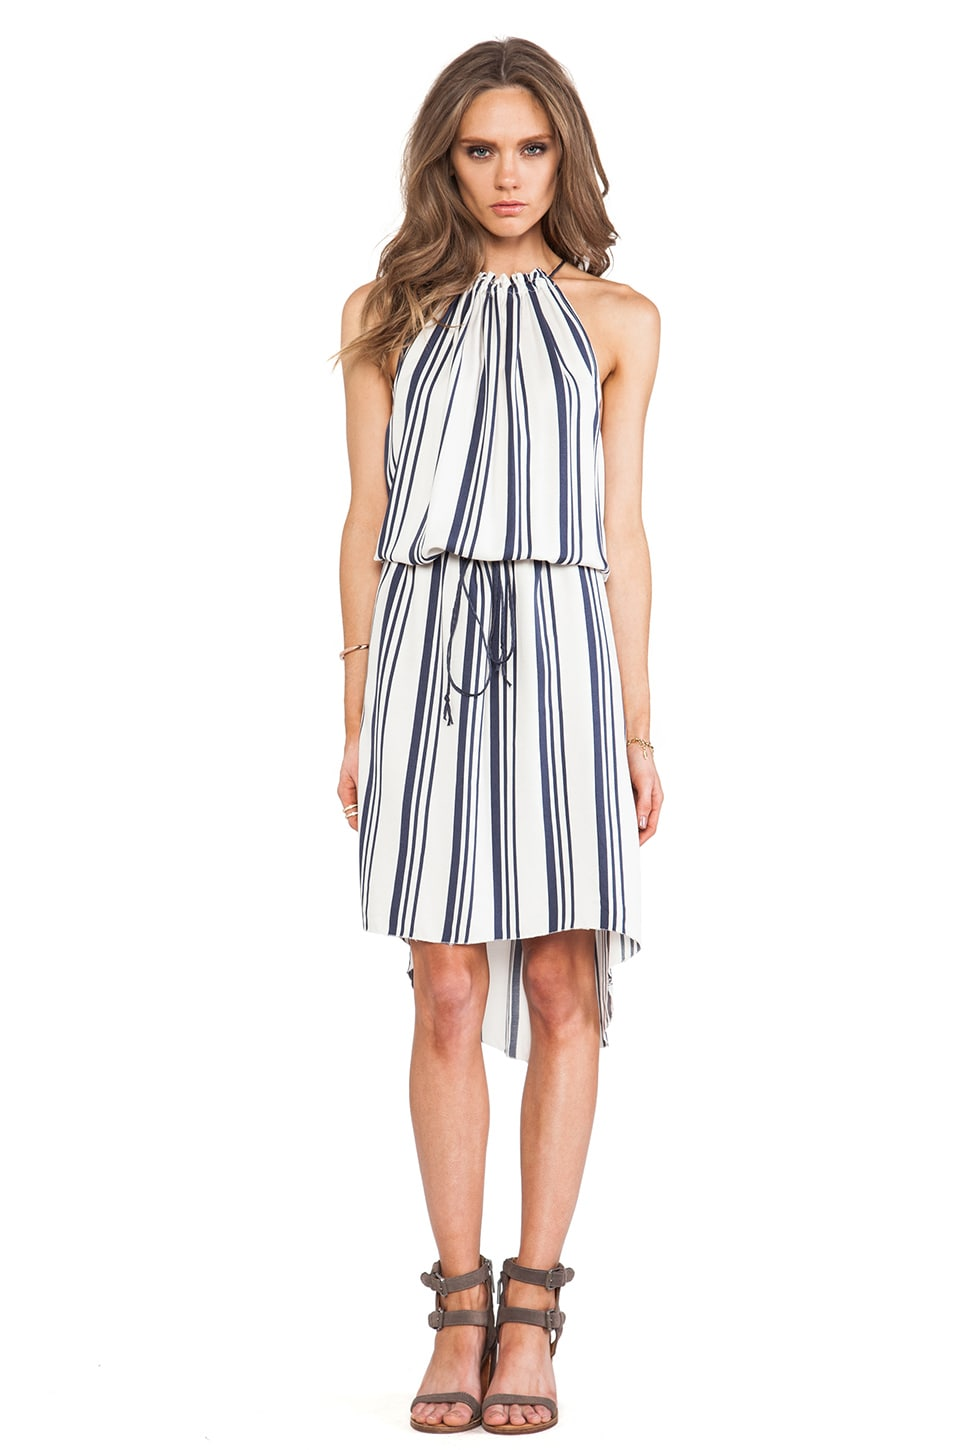 Ulla Johnson Tidewater Dress in Sailor